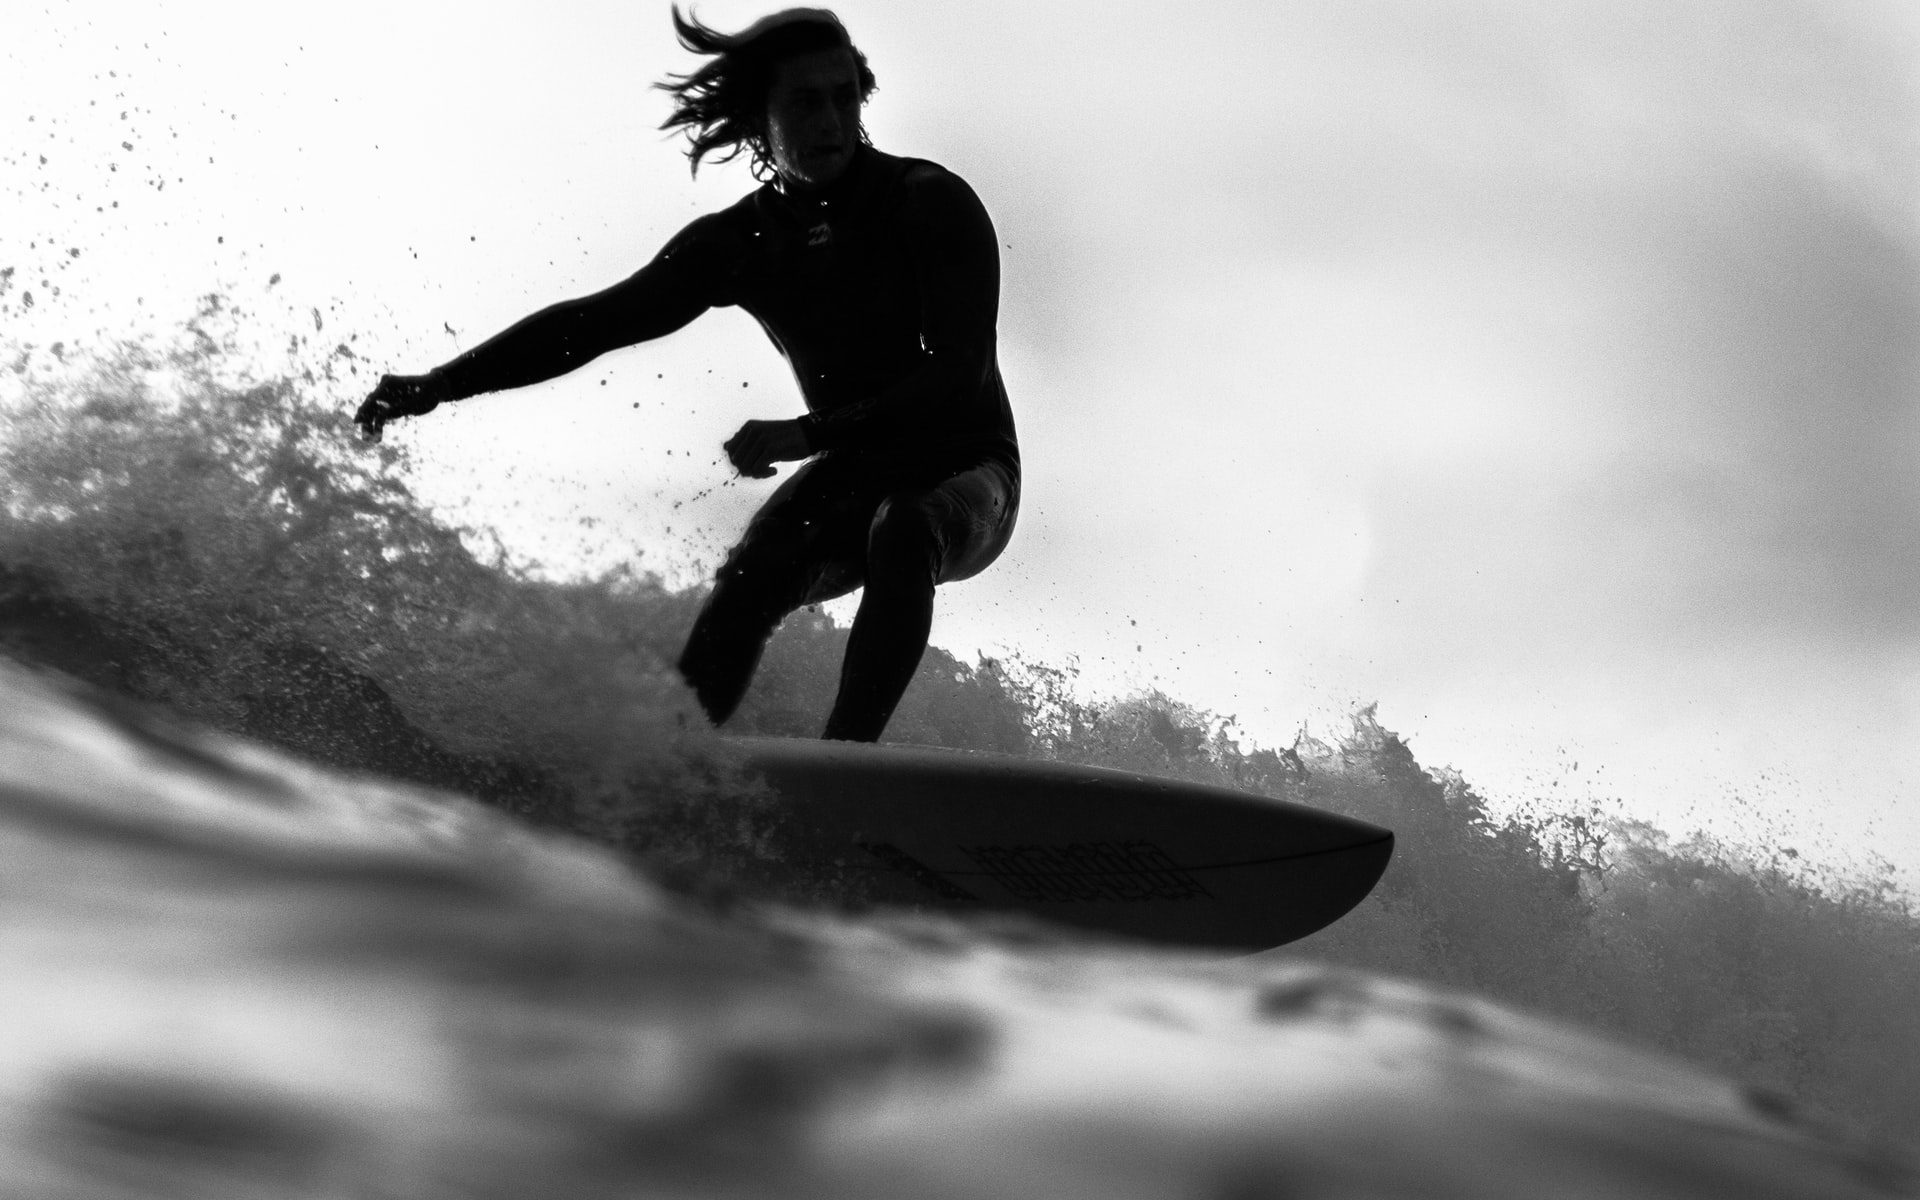 Why Do Surfers Have Long Hair